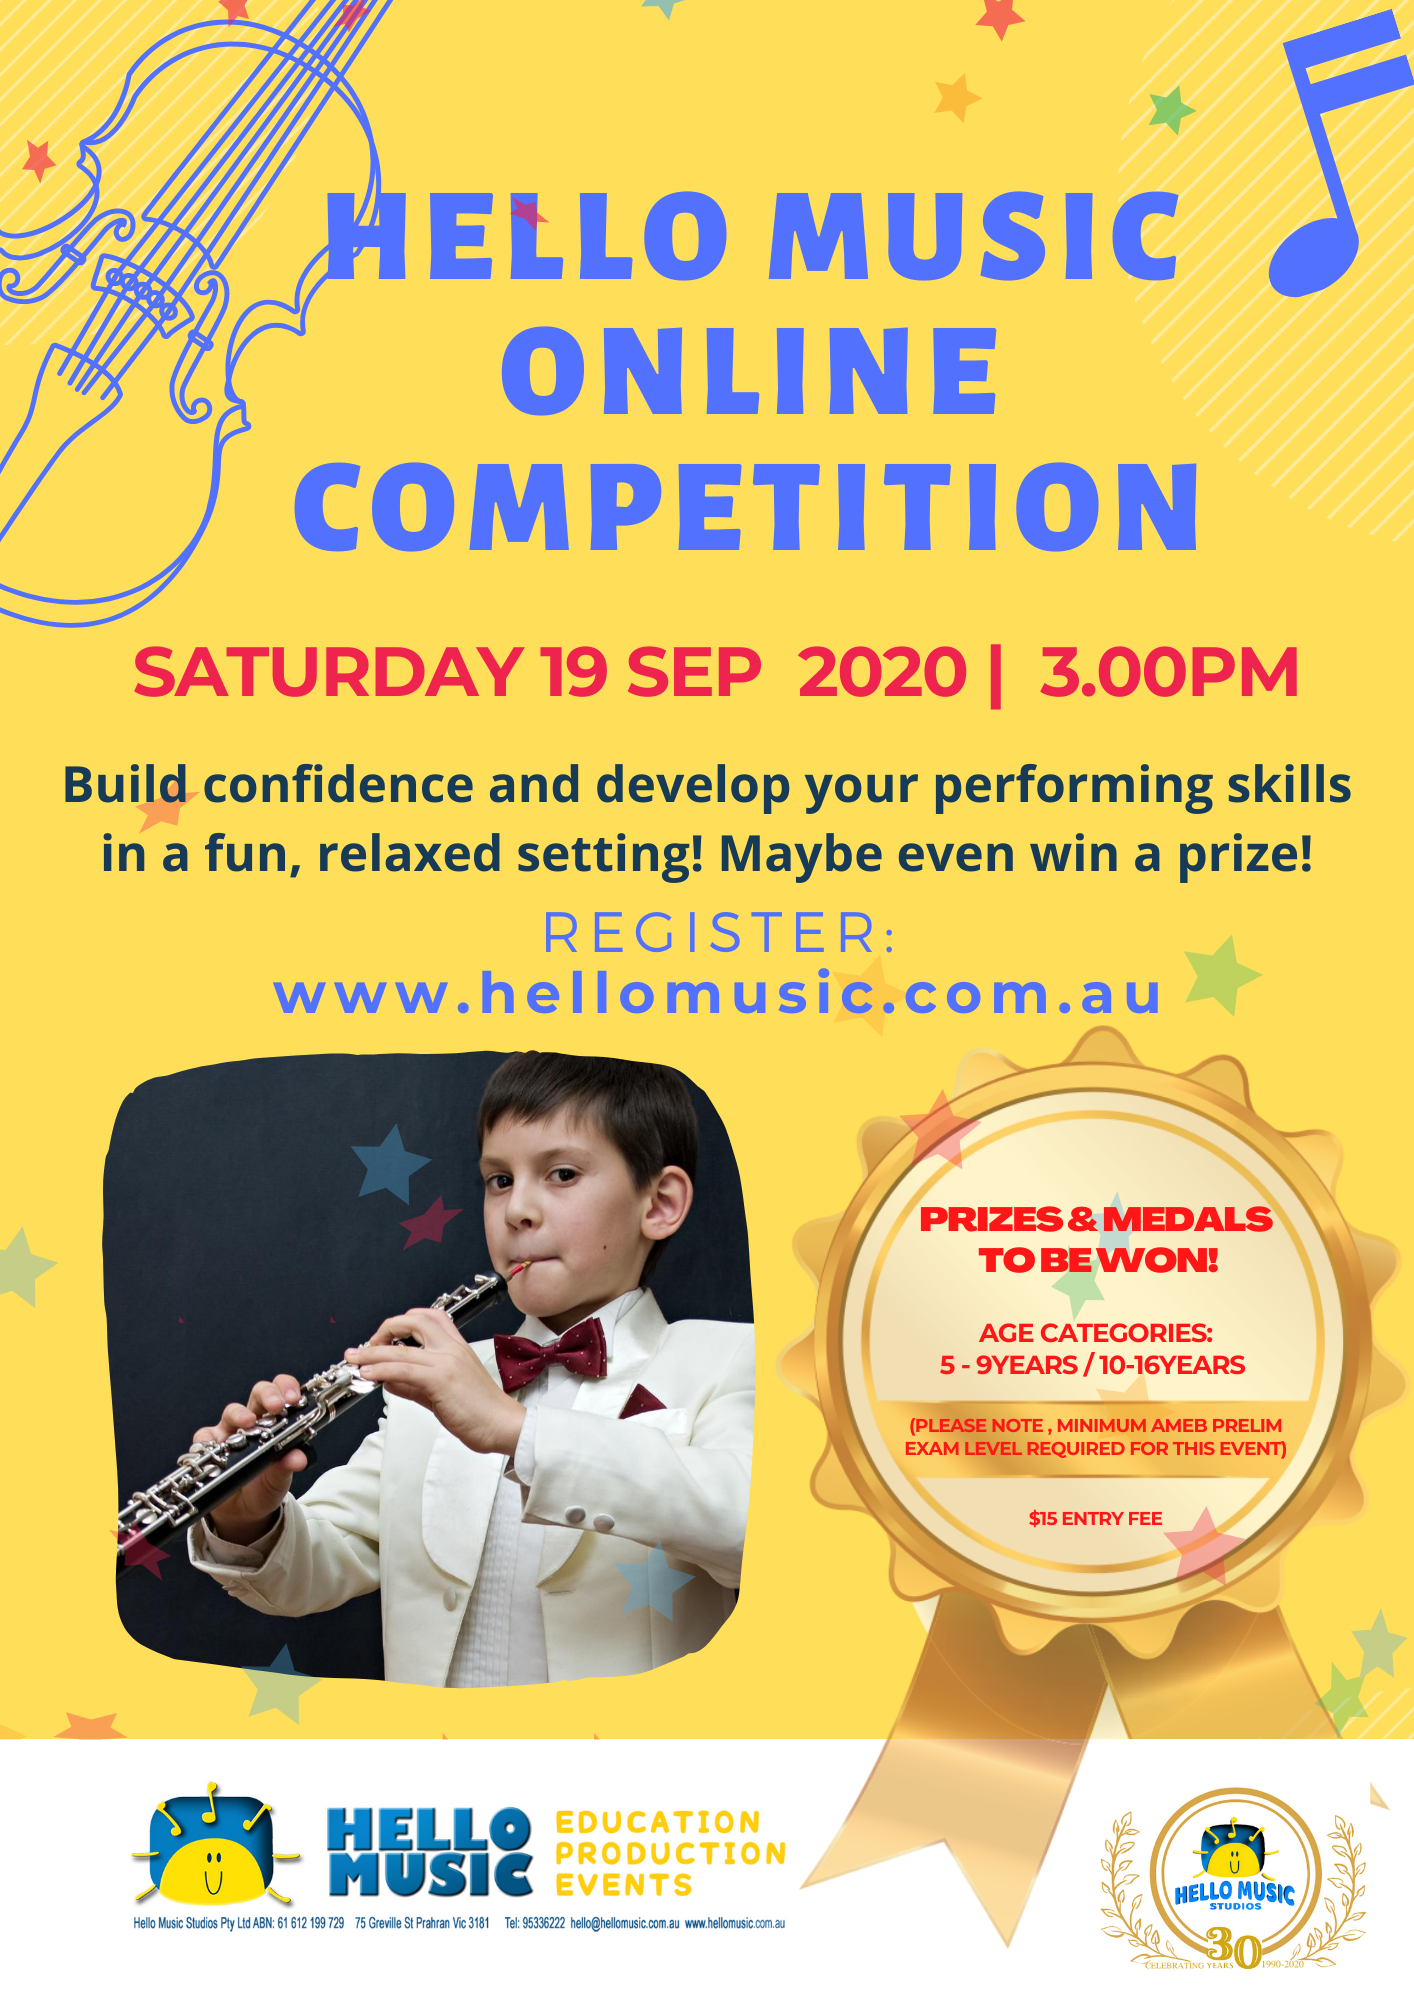 HELLO MUSIC COMPETITION 3 (2).png